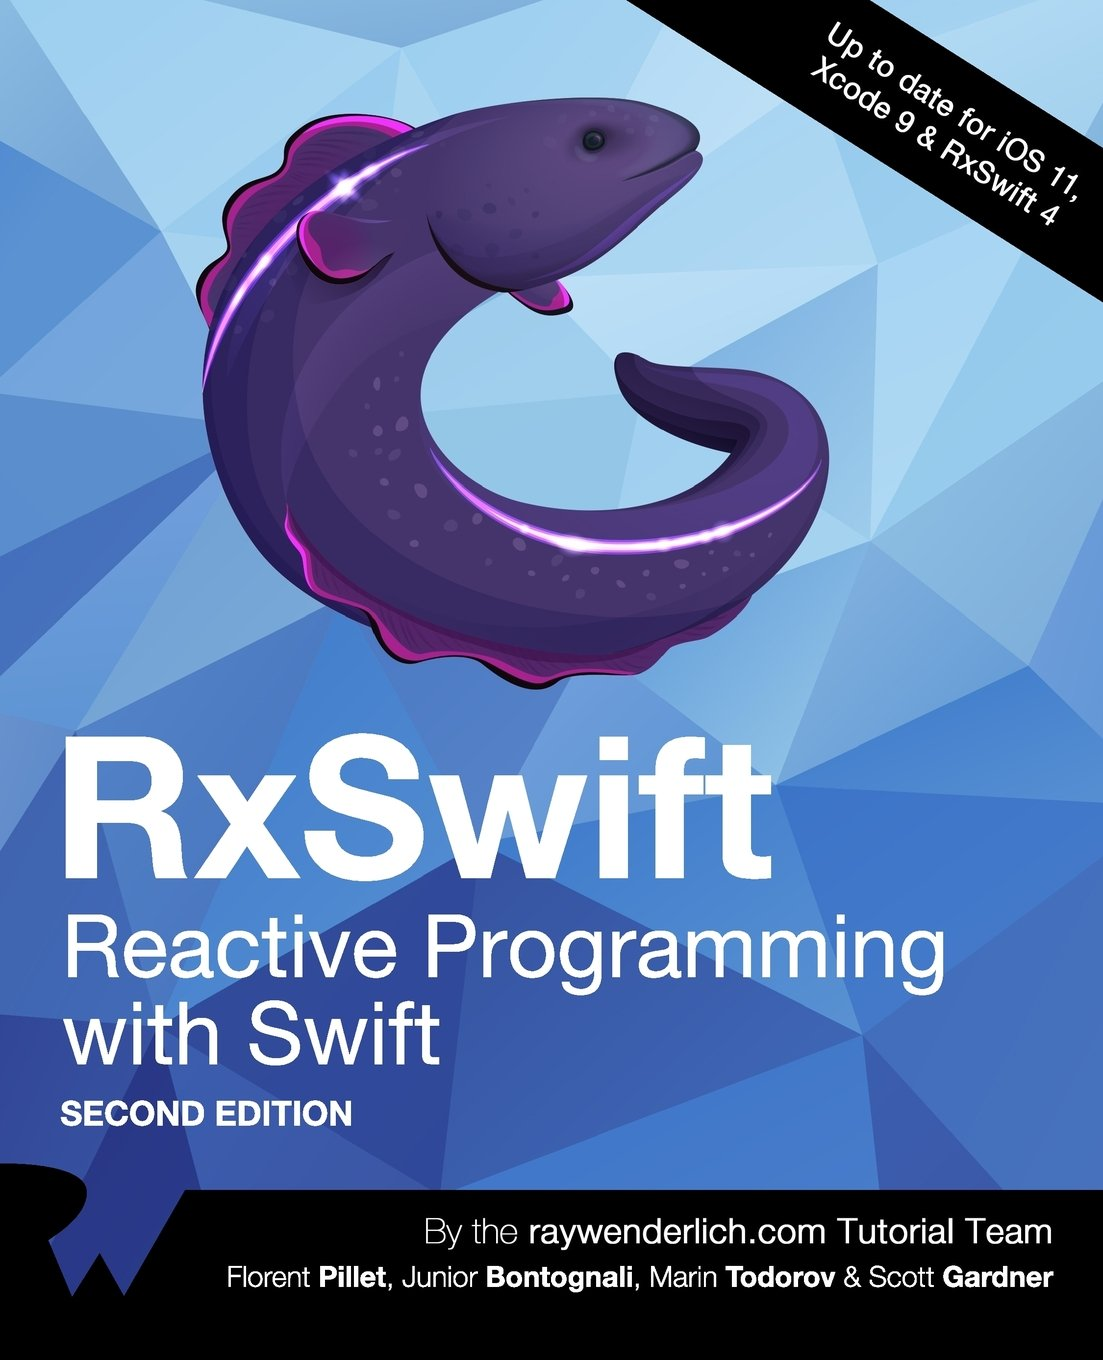 RxSwift: Reactive Programming with Swift, Second Edition